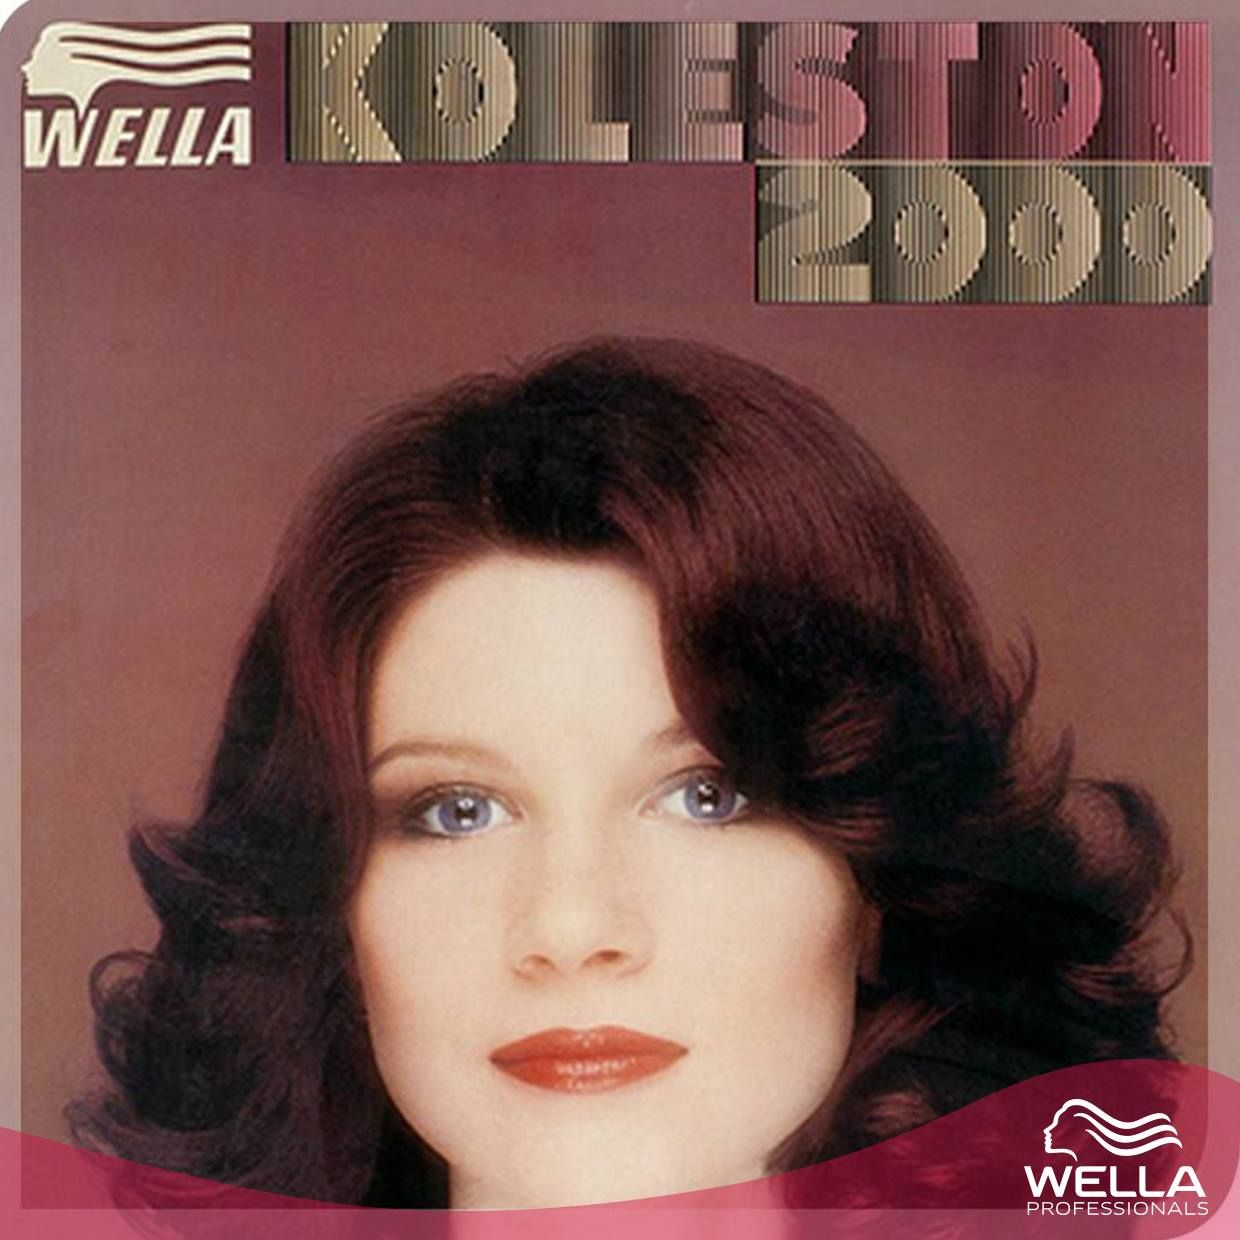 "في سنة 1974، تطور عالم الألوان مع كولستون 2000 من ويللا.   In 1974, colour science moved into the future with Wella's Koleston 2000, a gel-based formula. The slogan was ""colors naturally, conditions beautifully""—which still holds true today, of course! #TBT"